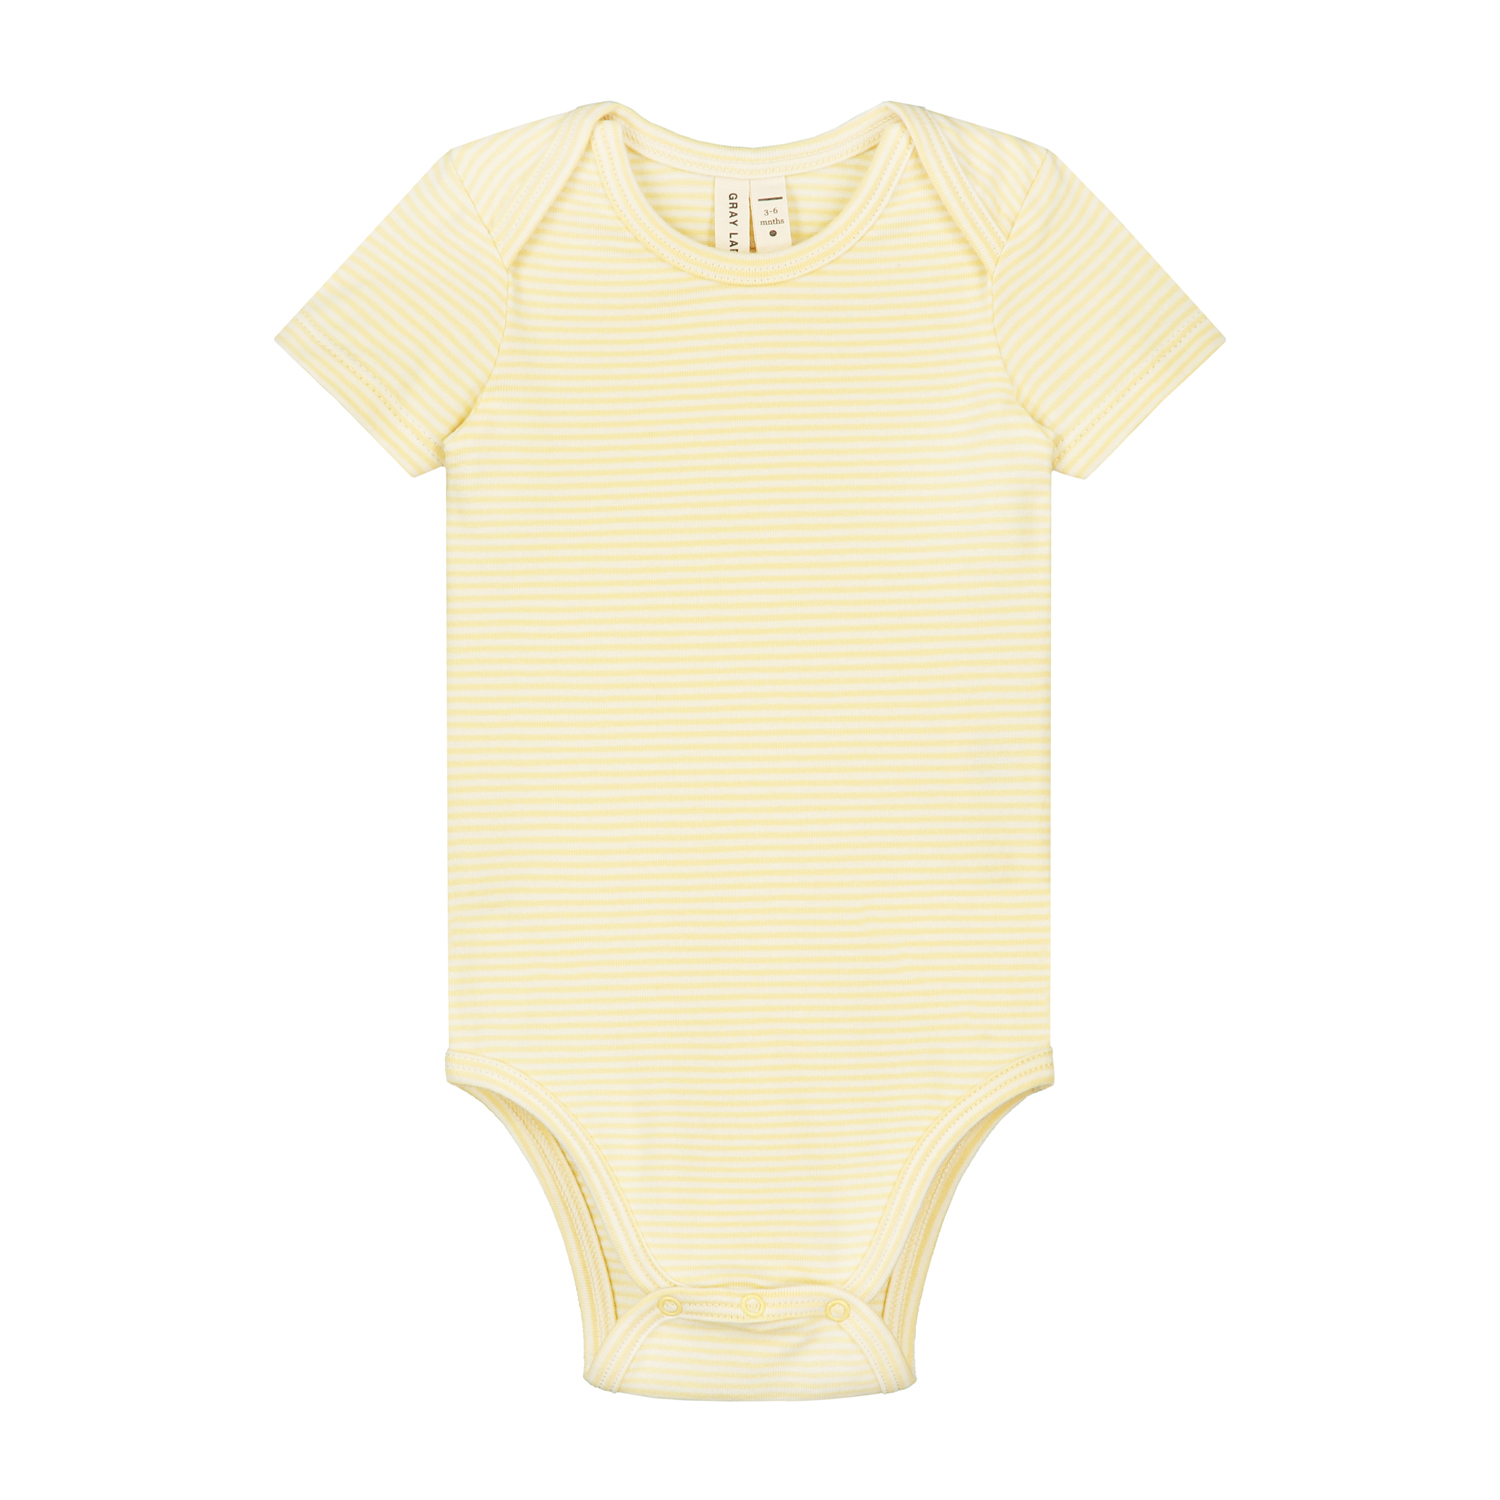 gray label baby onesie mellow yellow cream